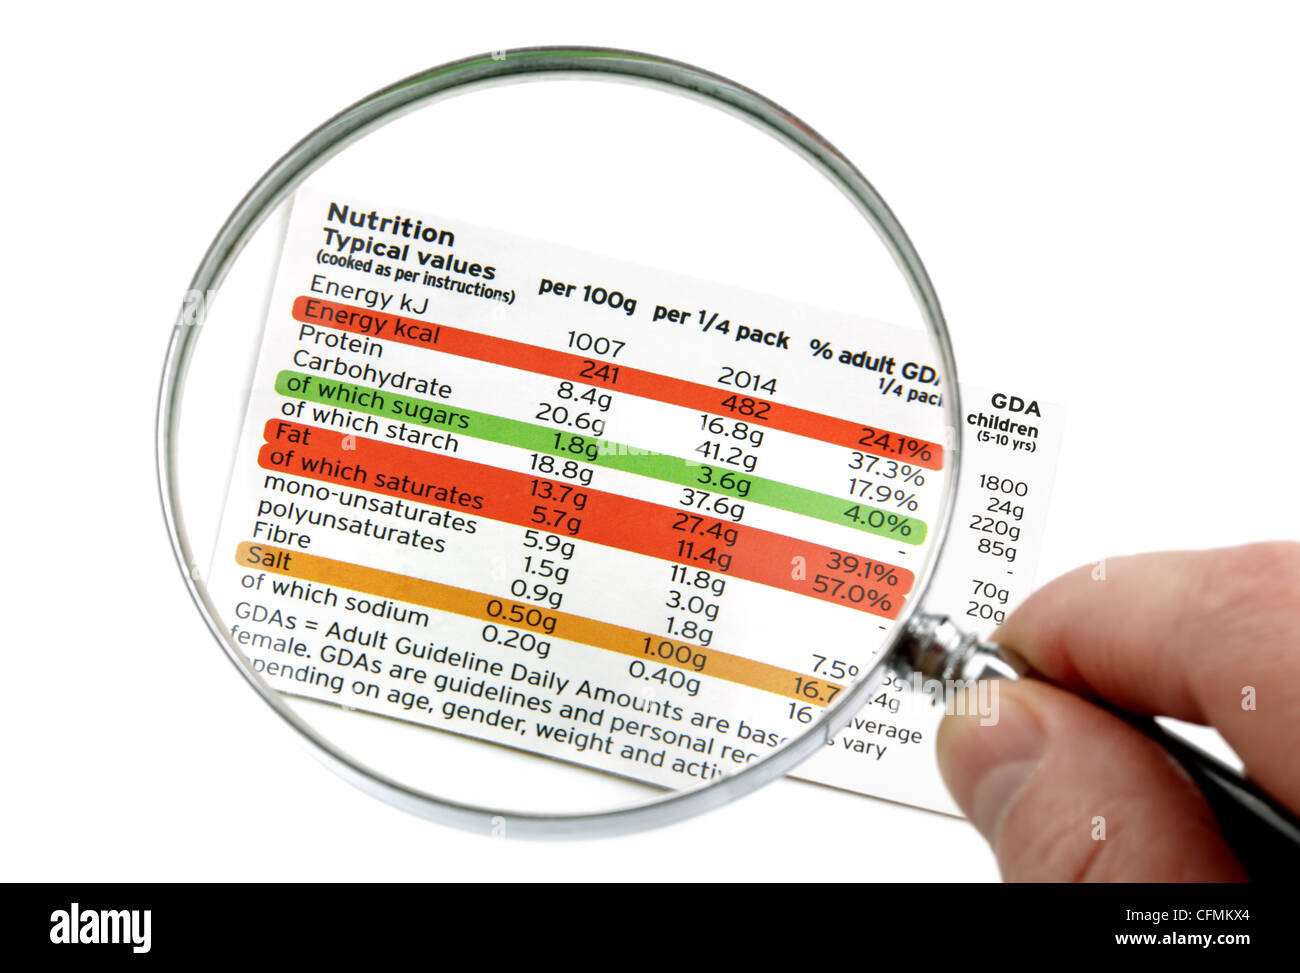 Nutritional label - Stock Image